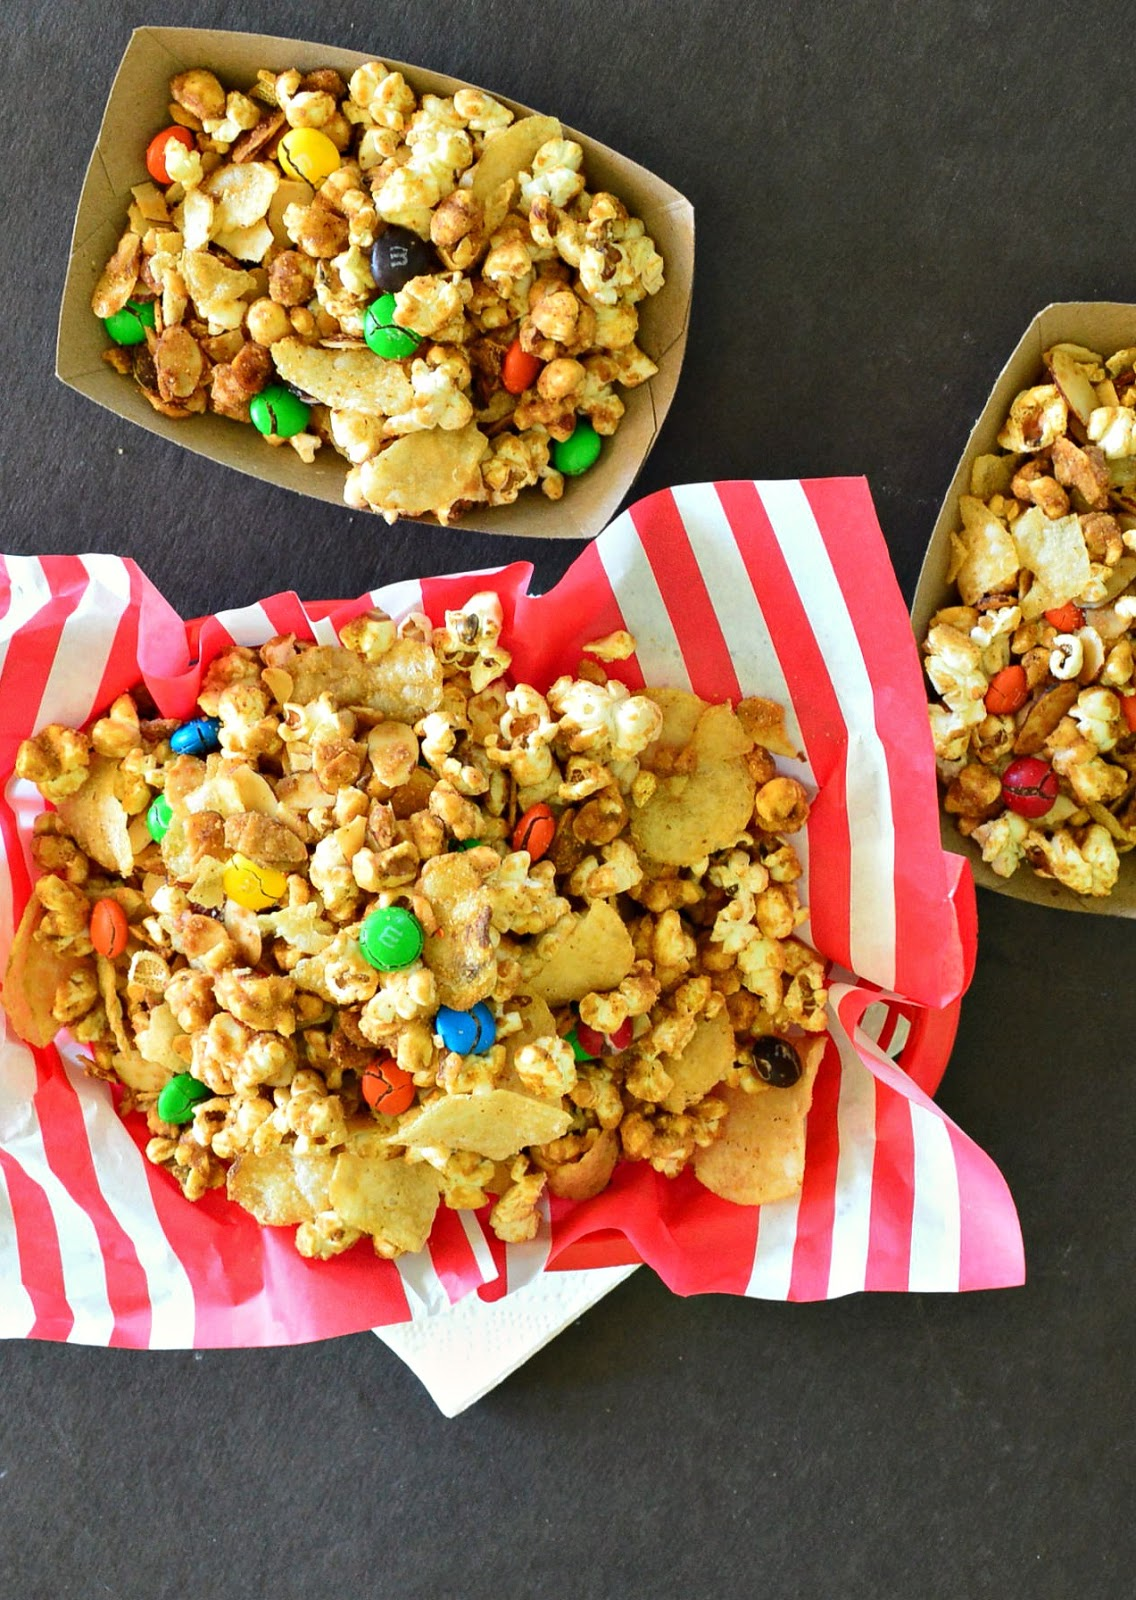 Popcorn with a chipotle caramel glaze and potato chips and almonds and m and m's! #caramelcorn #snackfood #popcorn www.thisishowicook.com